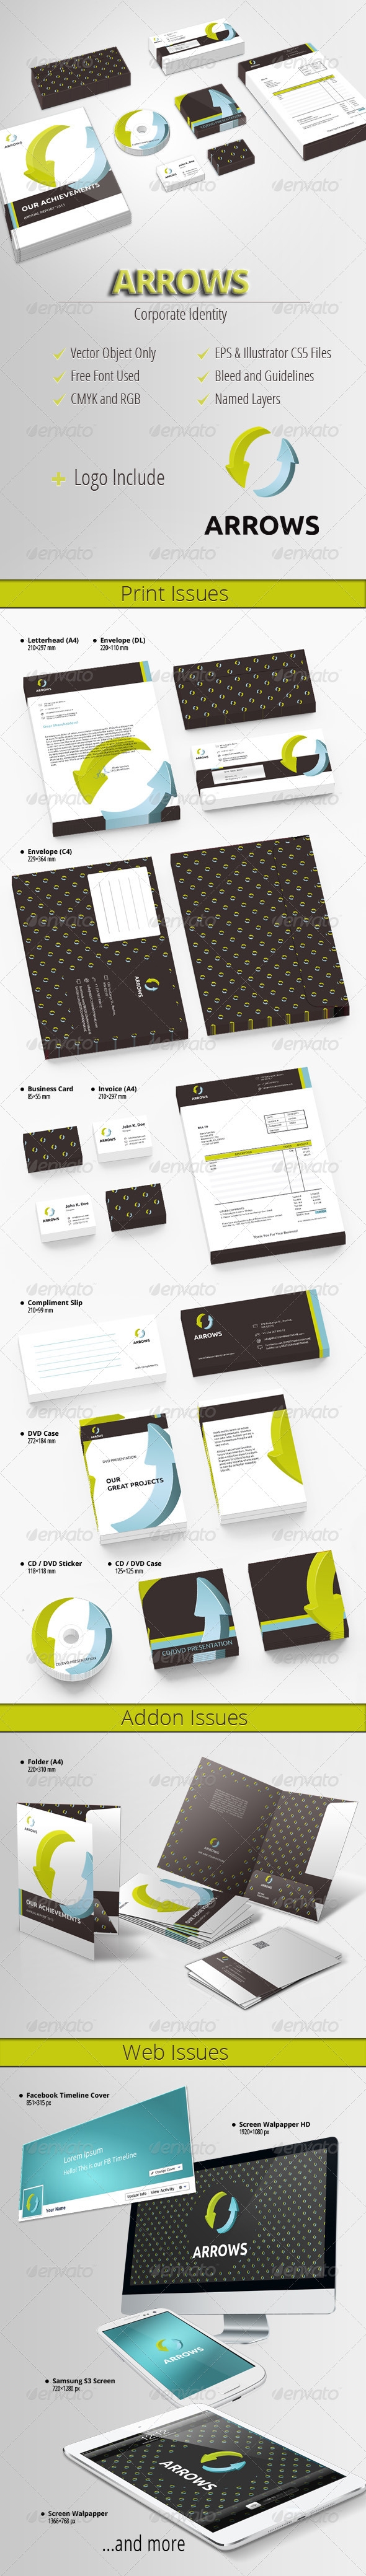 Arrows - Modern Corporate Identity - Stationery Print Templates